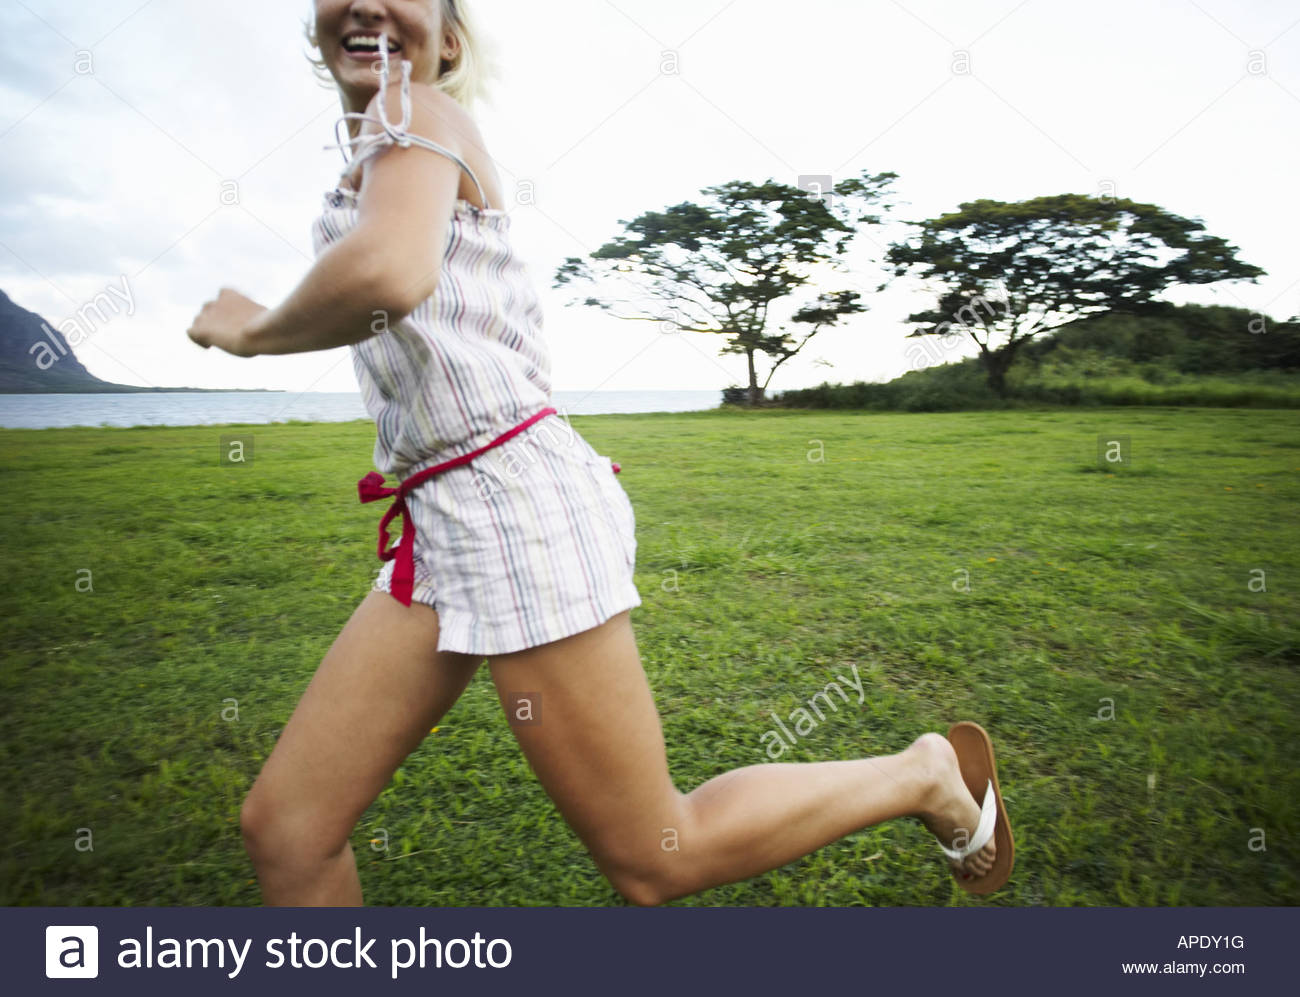 Young woman running through field - Stock Image